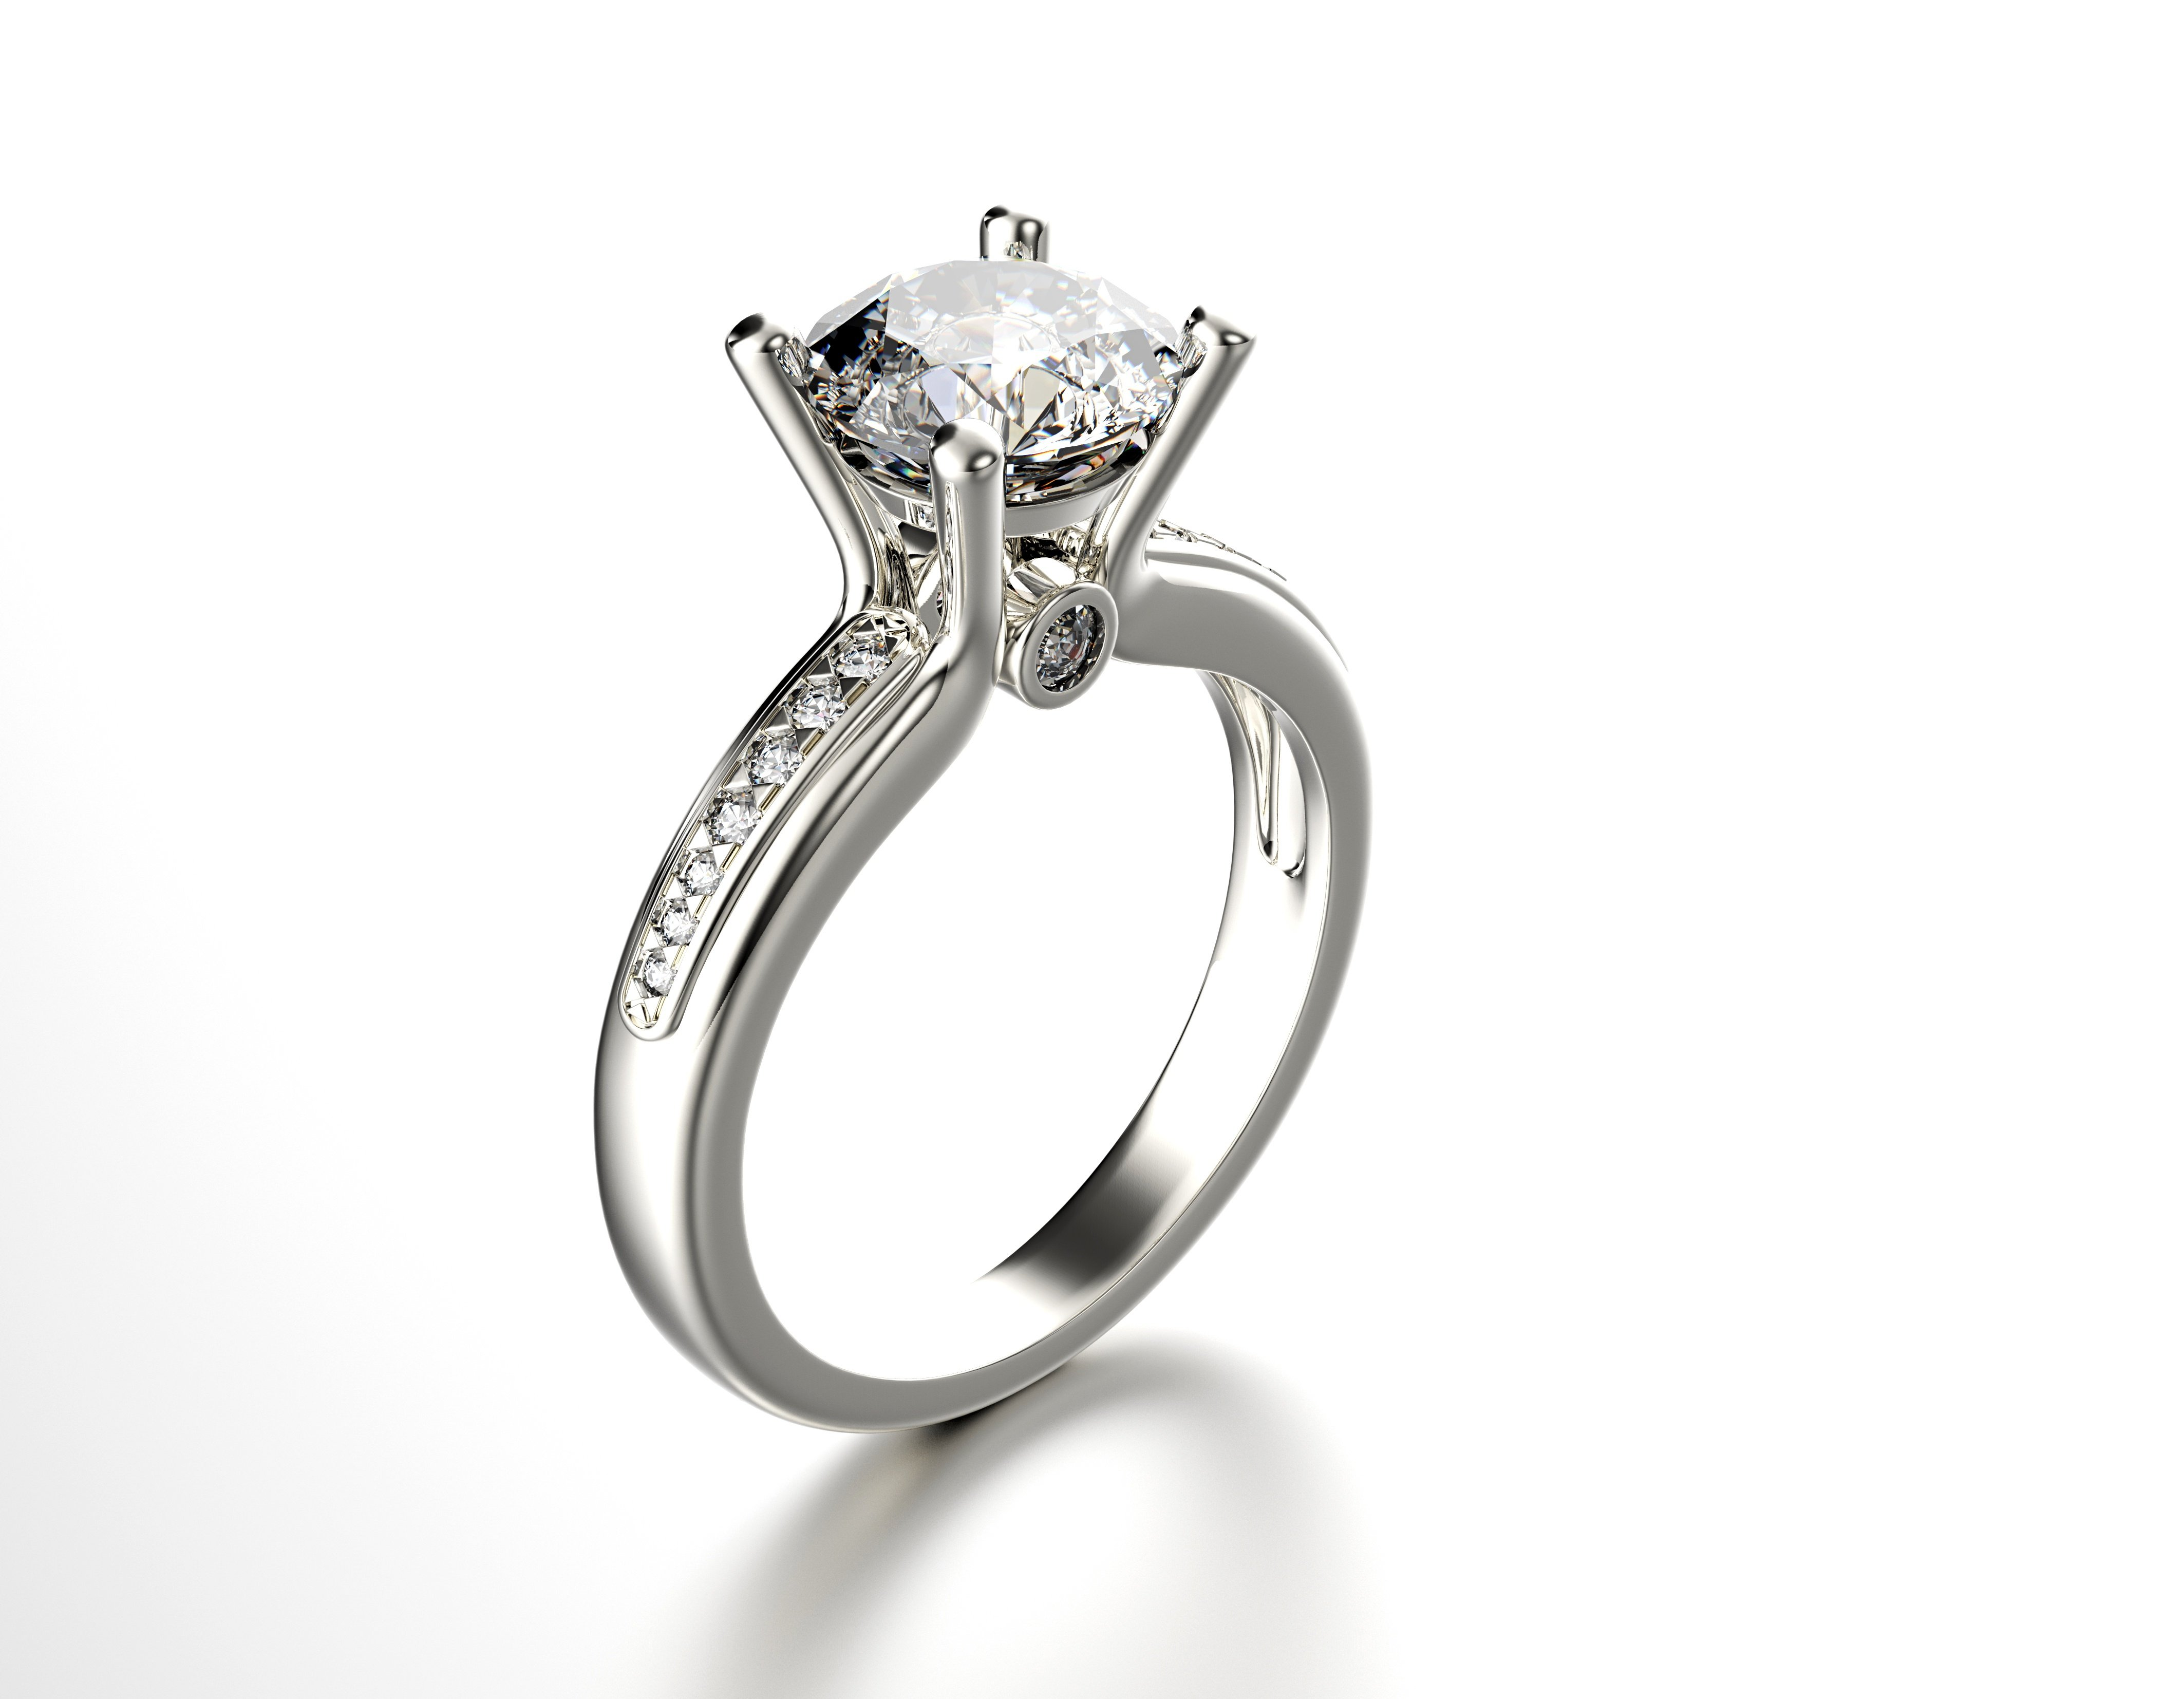 gender bias plays a role in selling your diamond ring